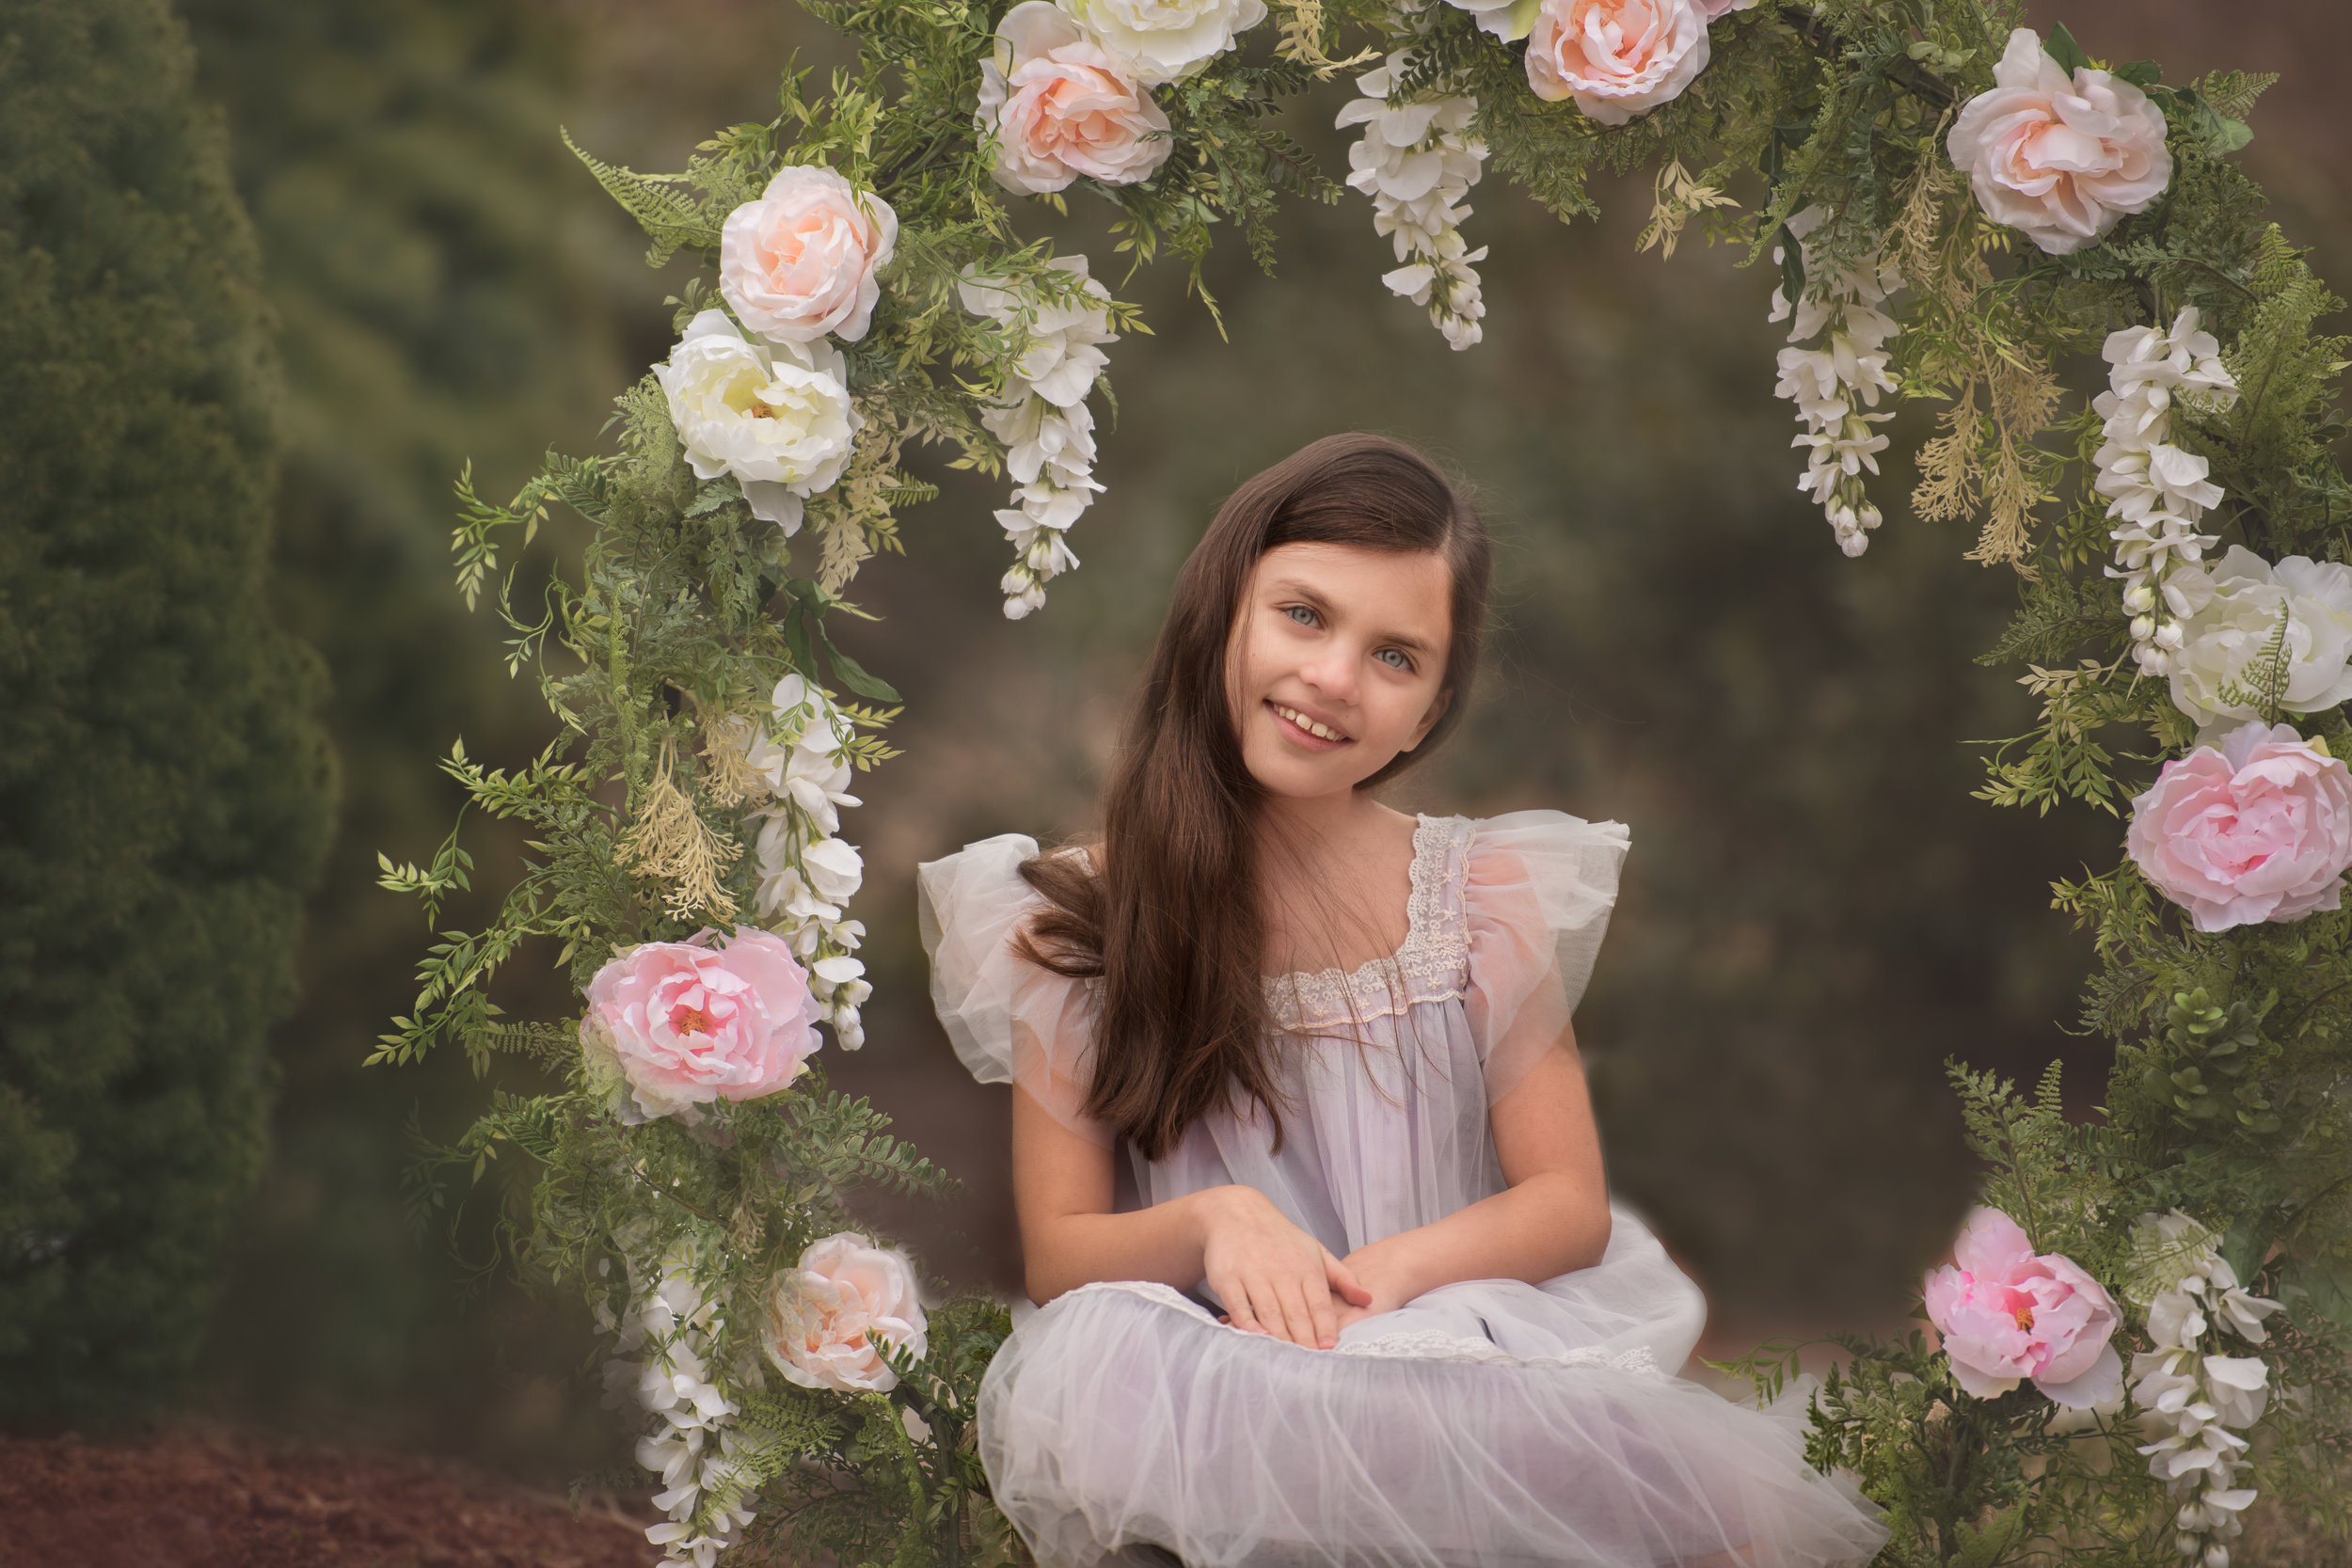 Girl in Dress for Floral Hoop Photo Session